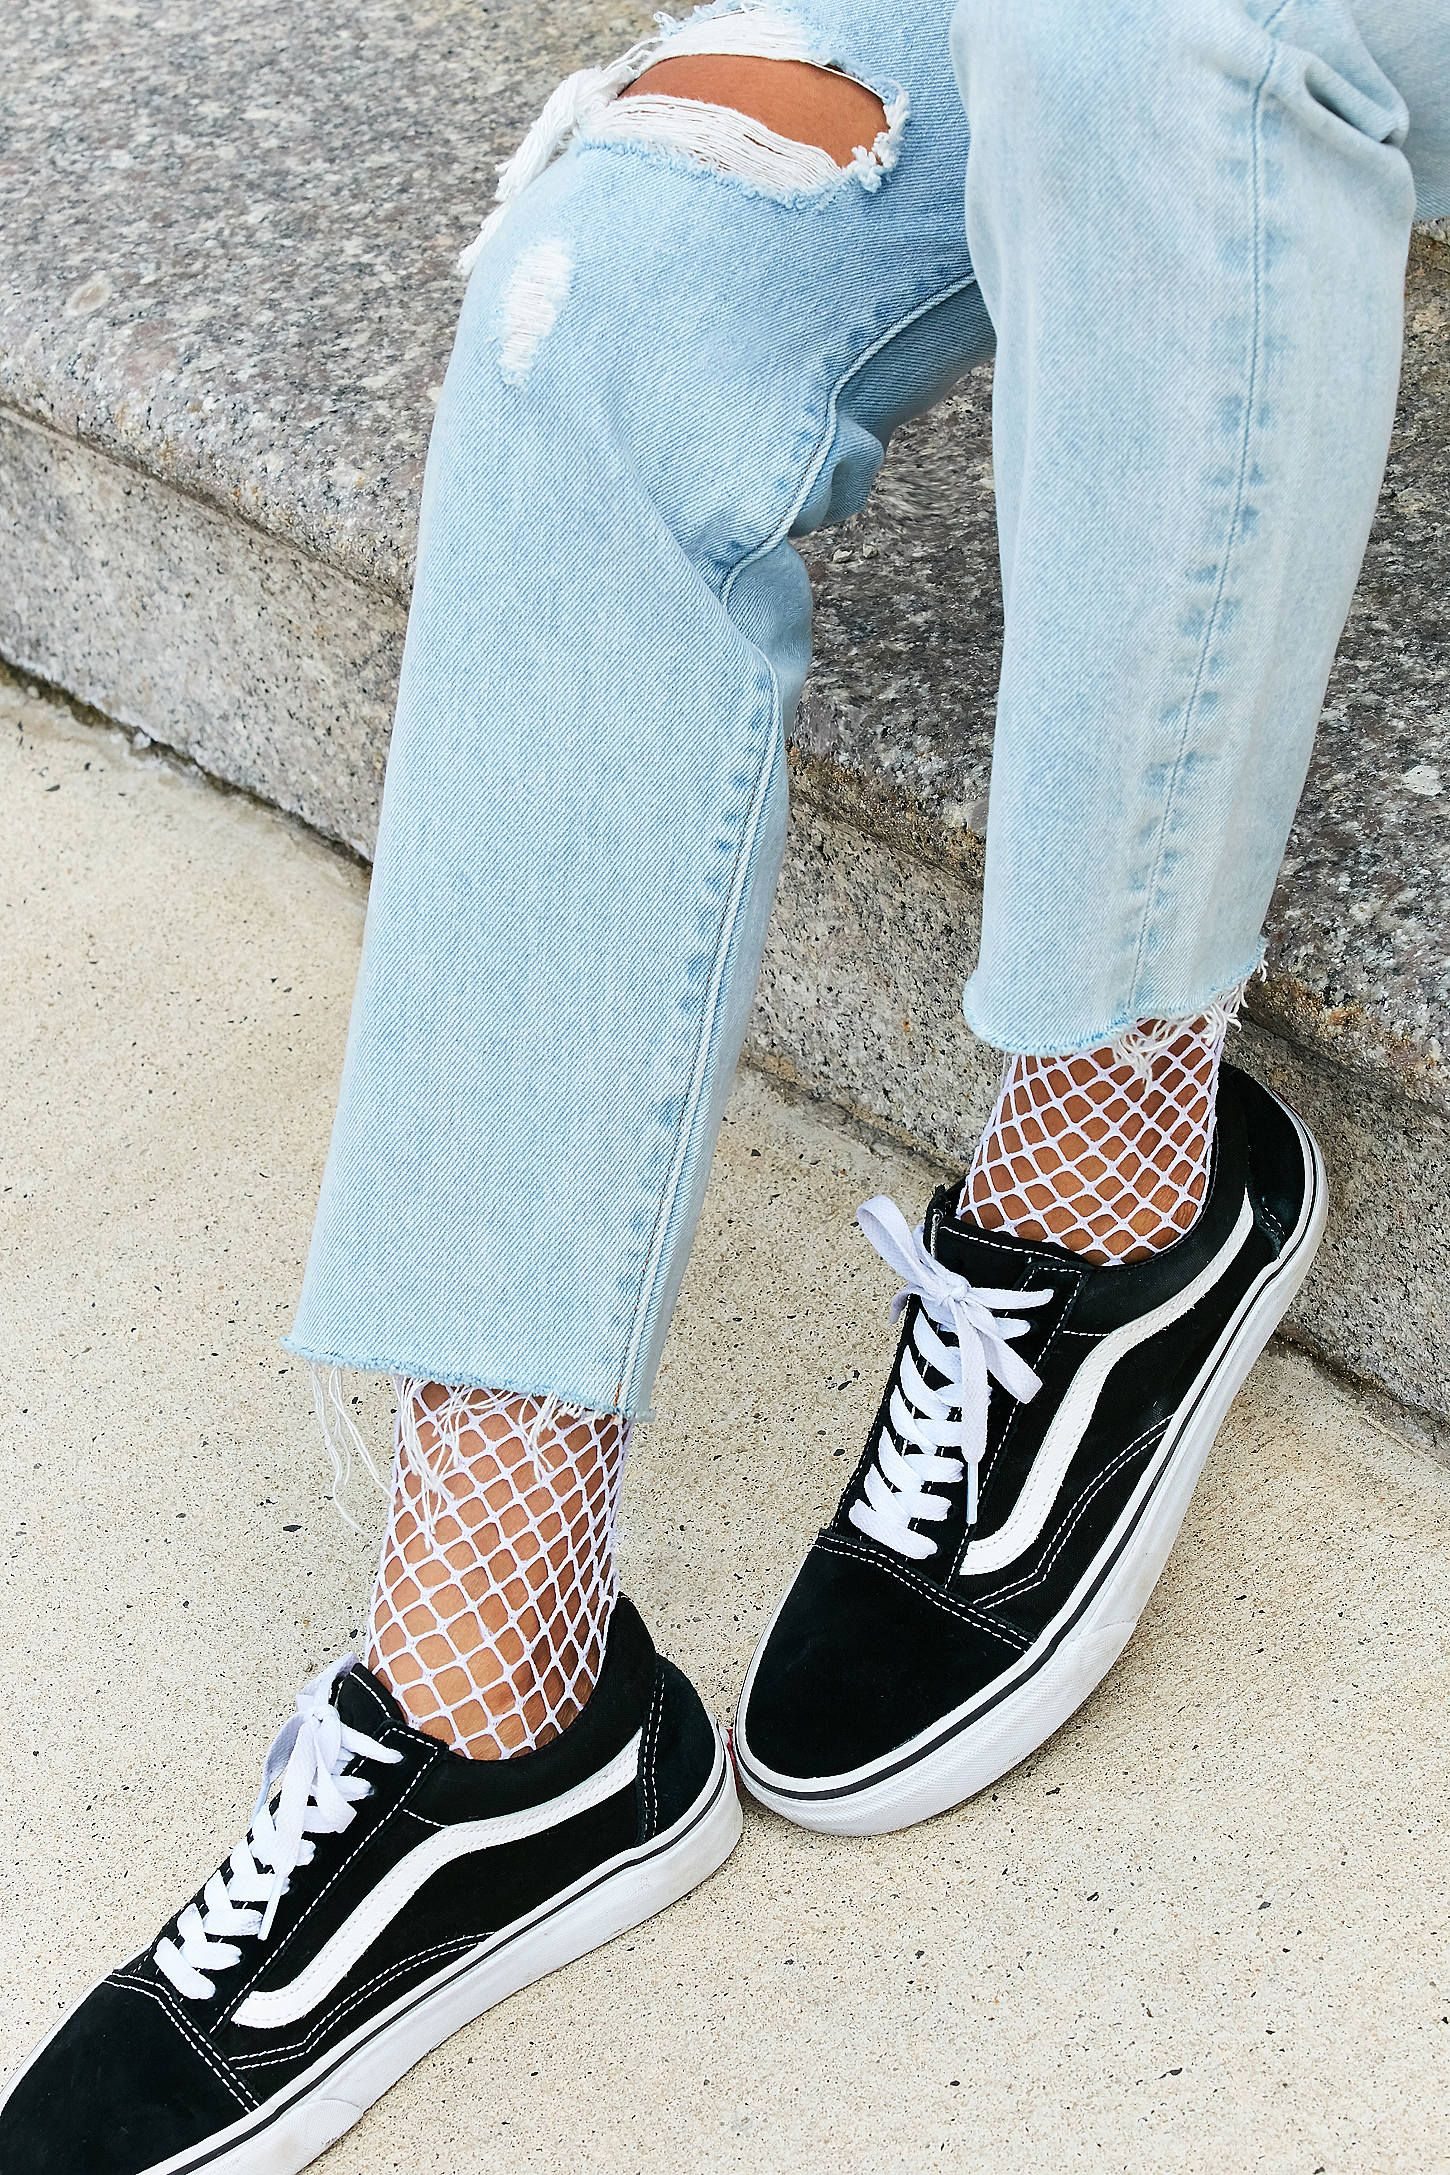 Crew socks outfit, Fishnet socks outfit